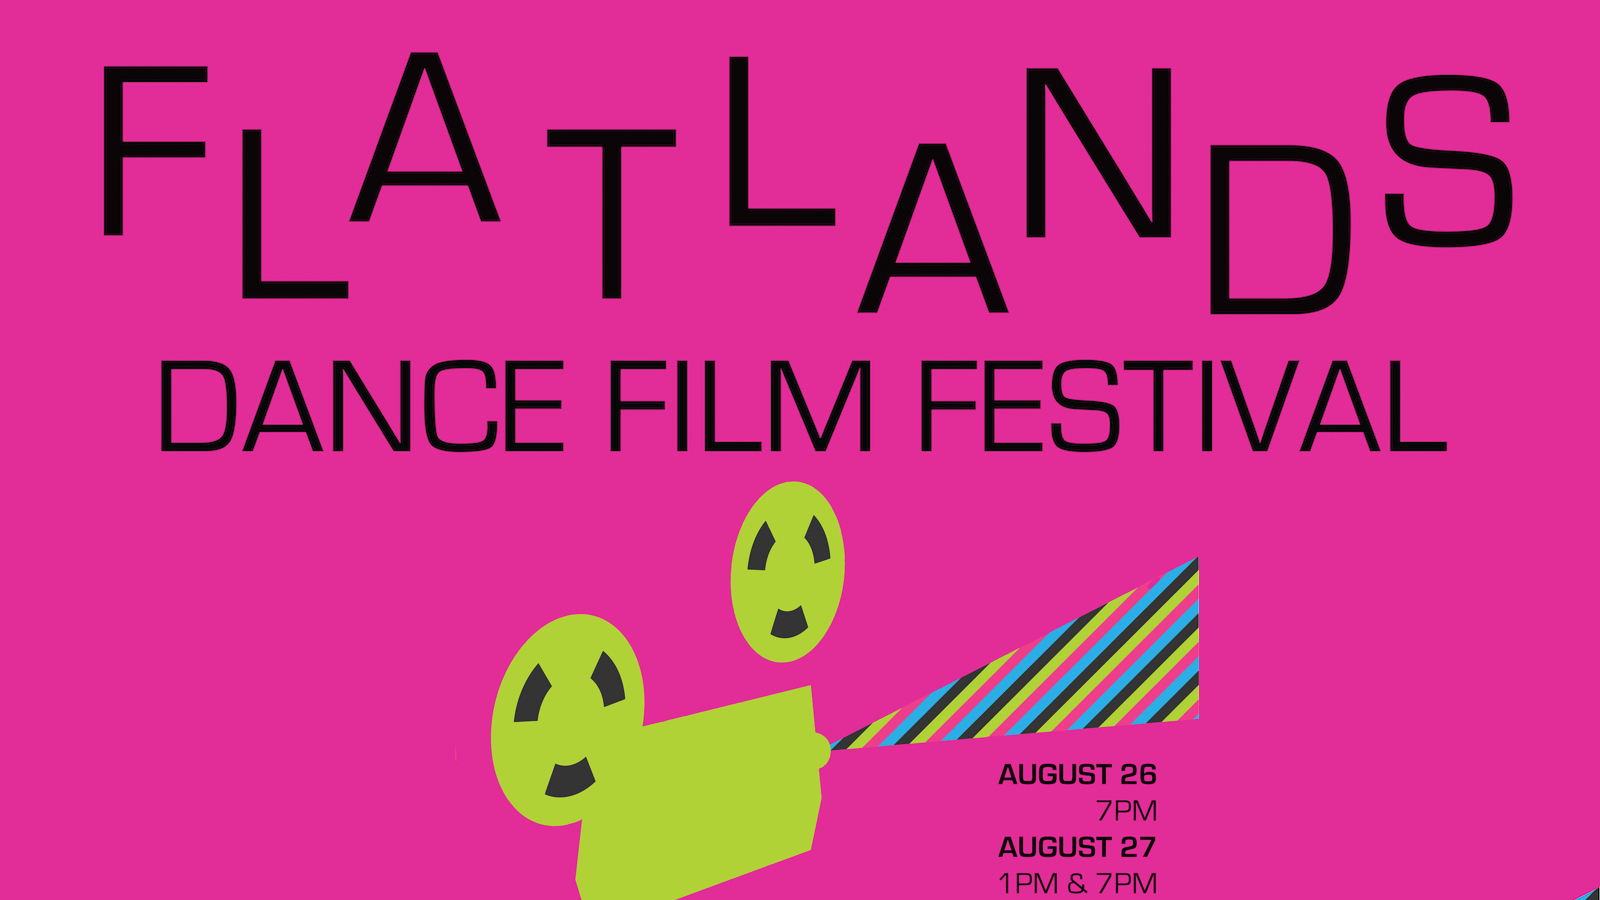 Flatlands Film Festival Aug 26-27 at 7pm